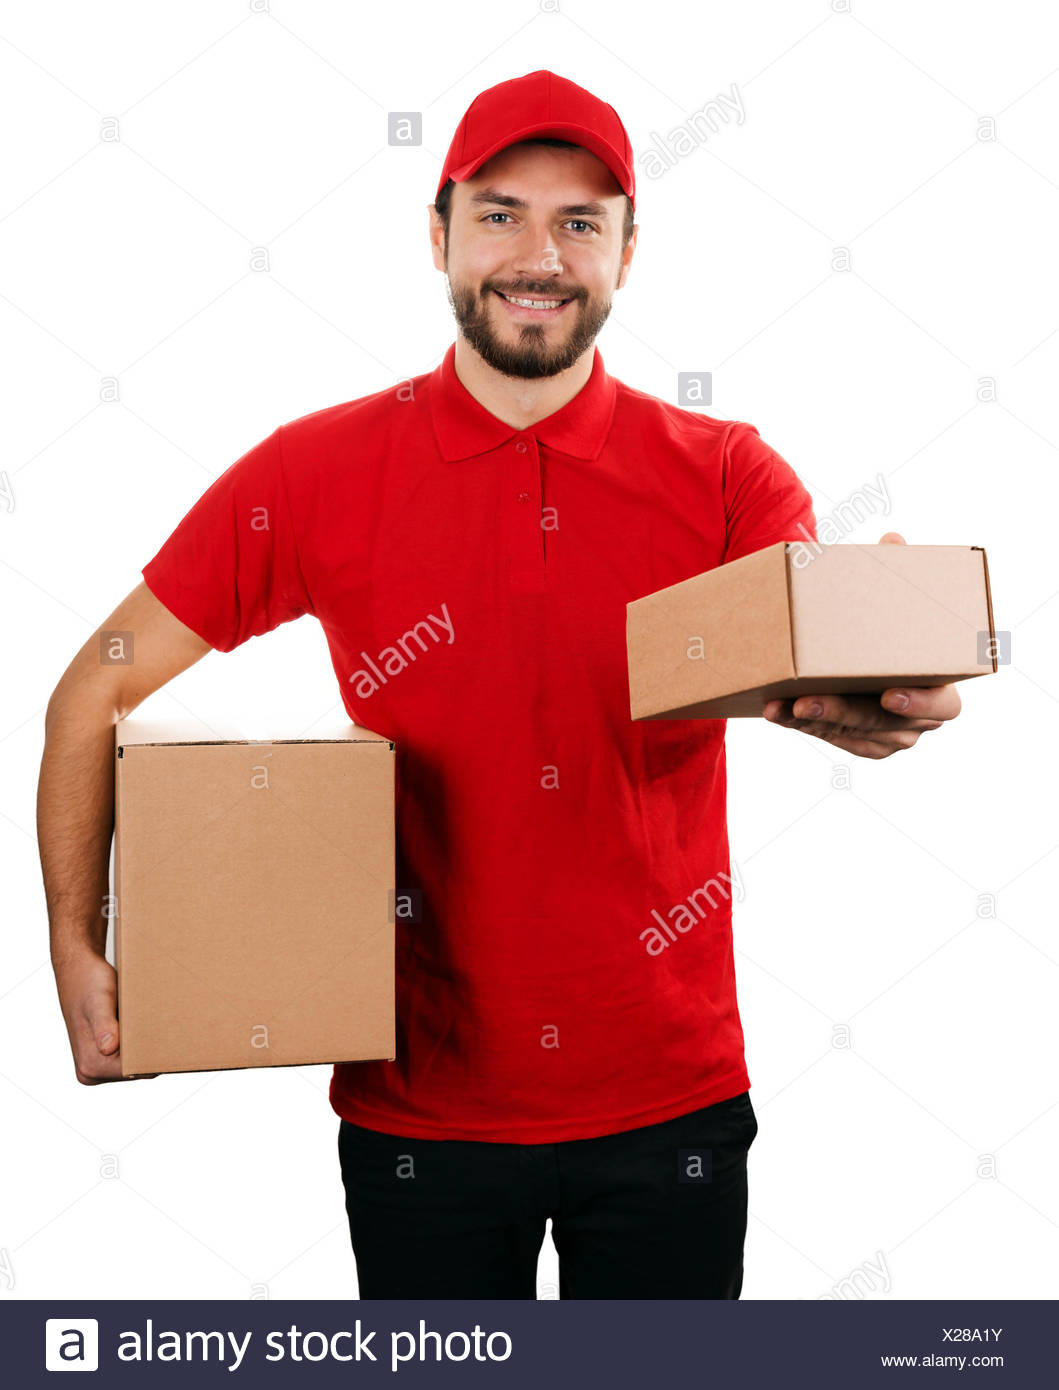 delivery service - young smiling courier holding boxes on white - Stock Image